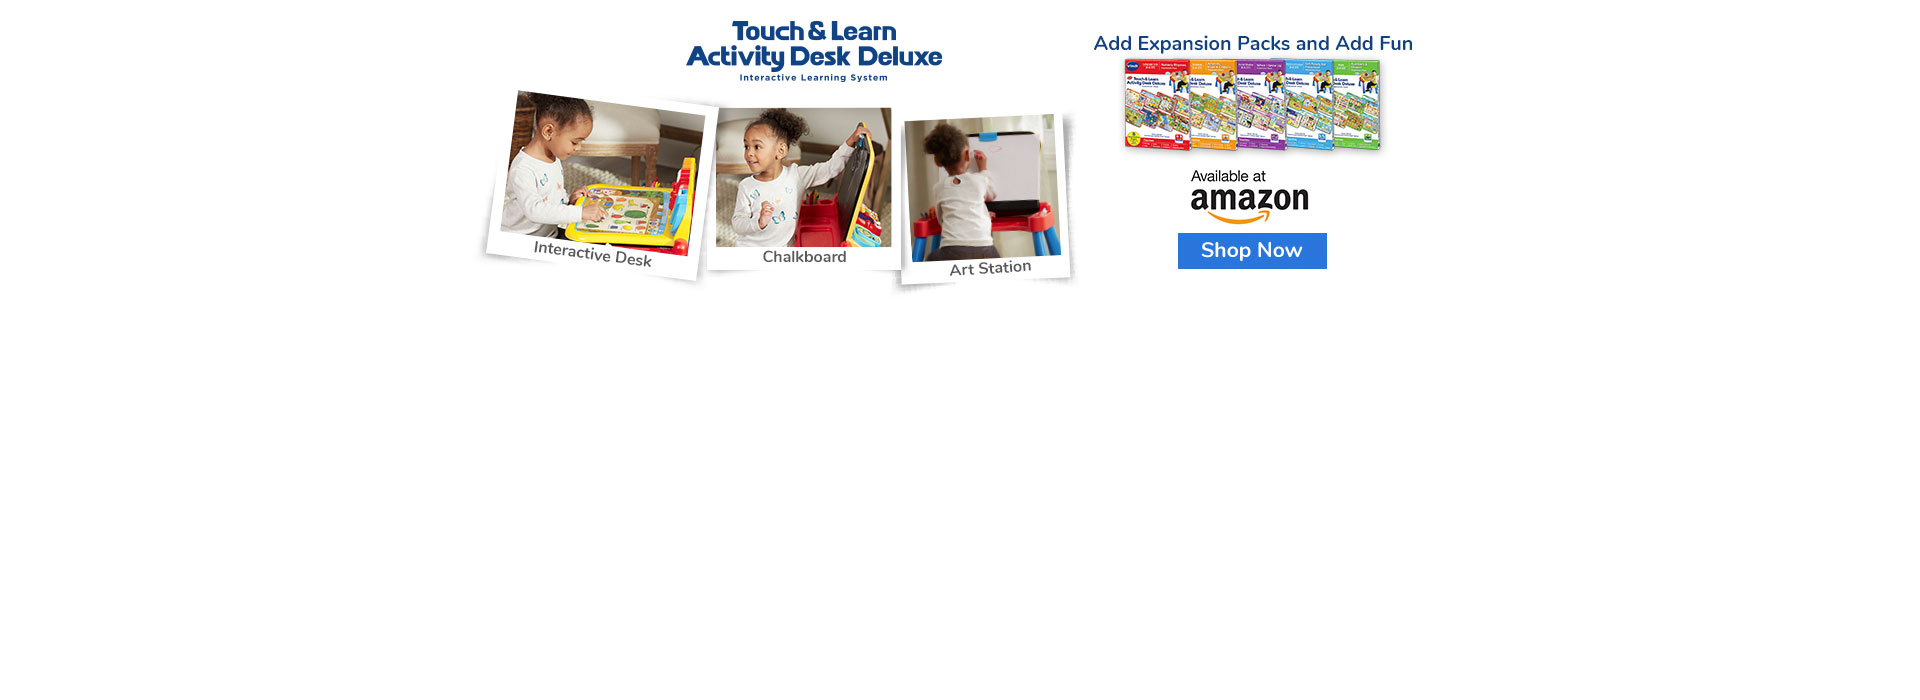 Touch & Learn Activity Desk Deluxe & Books - Buy now at Amazon